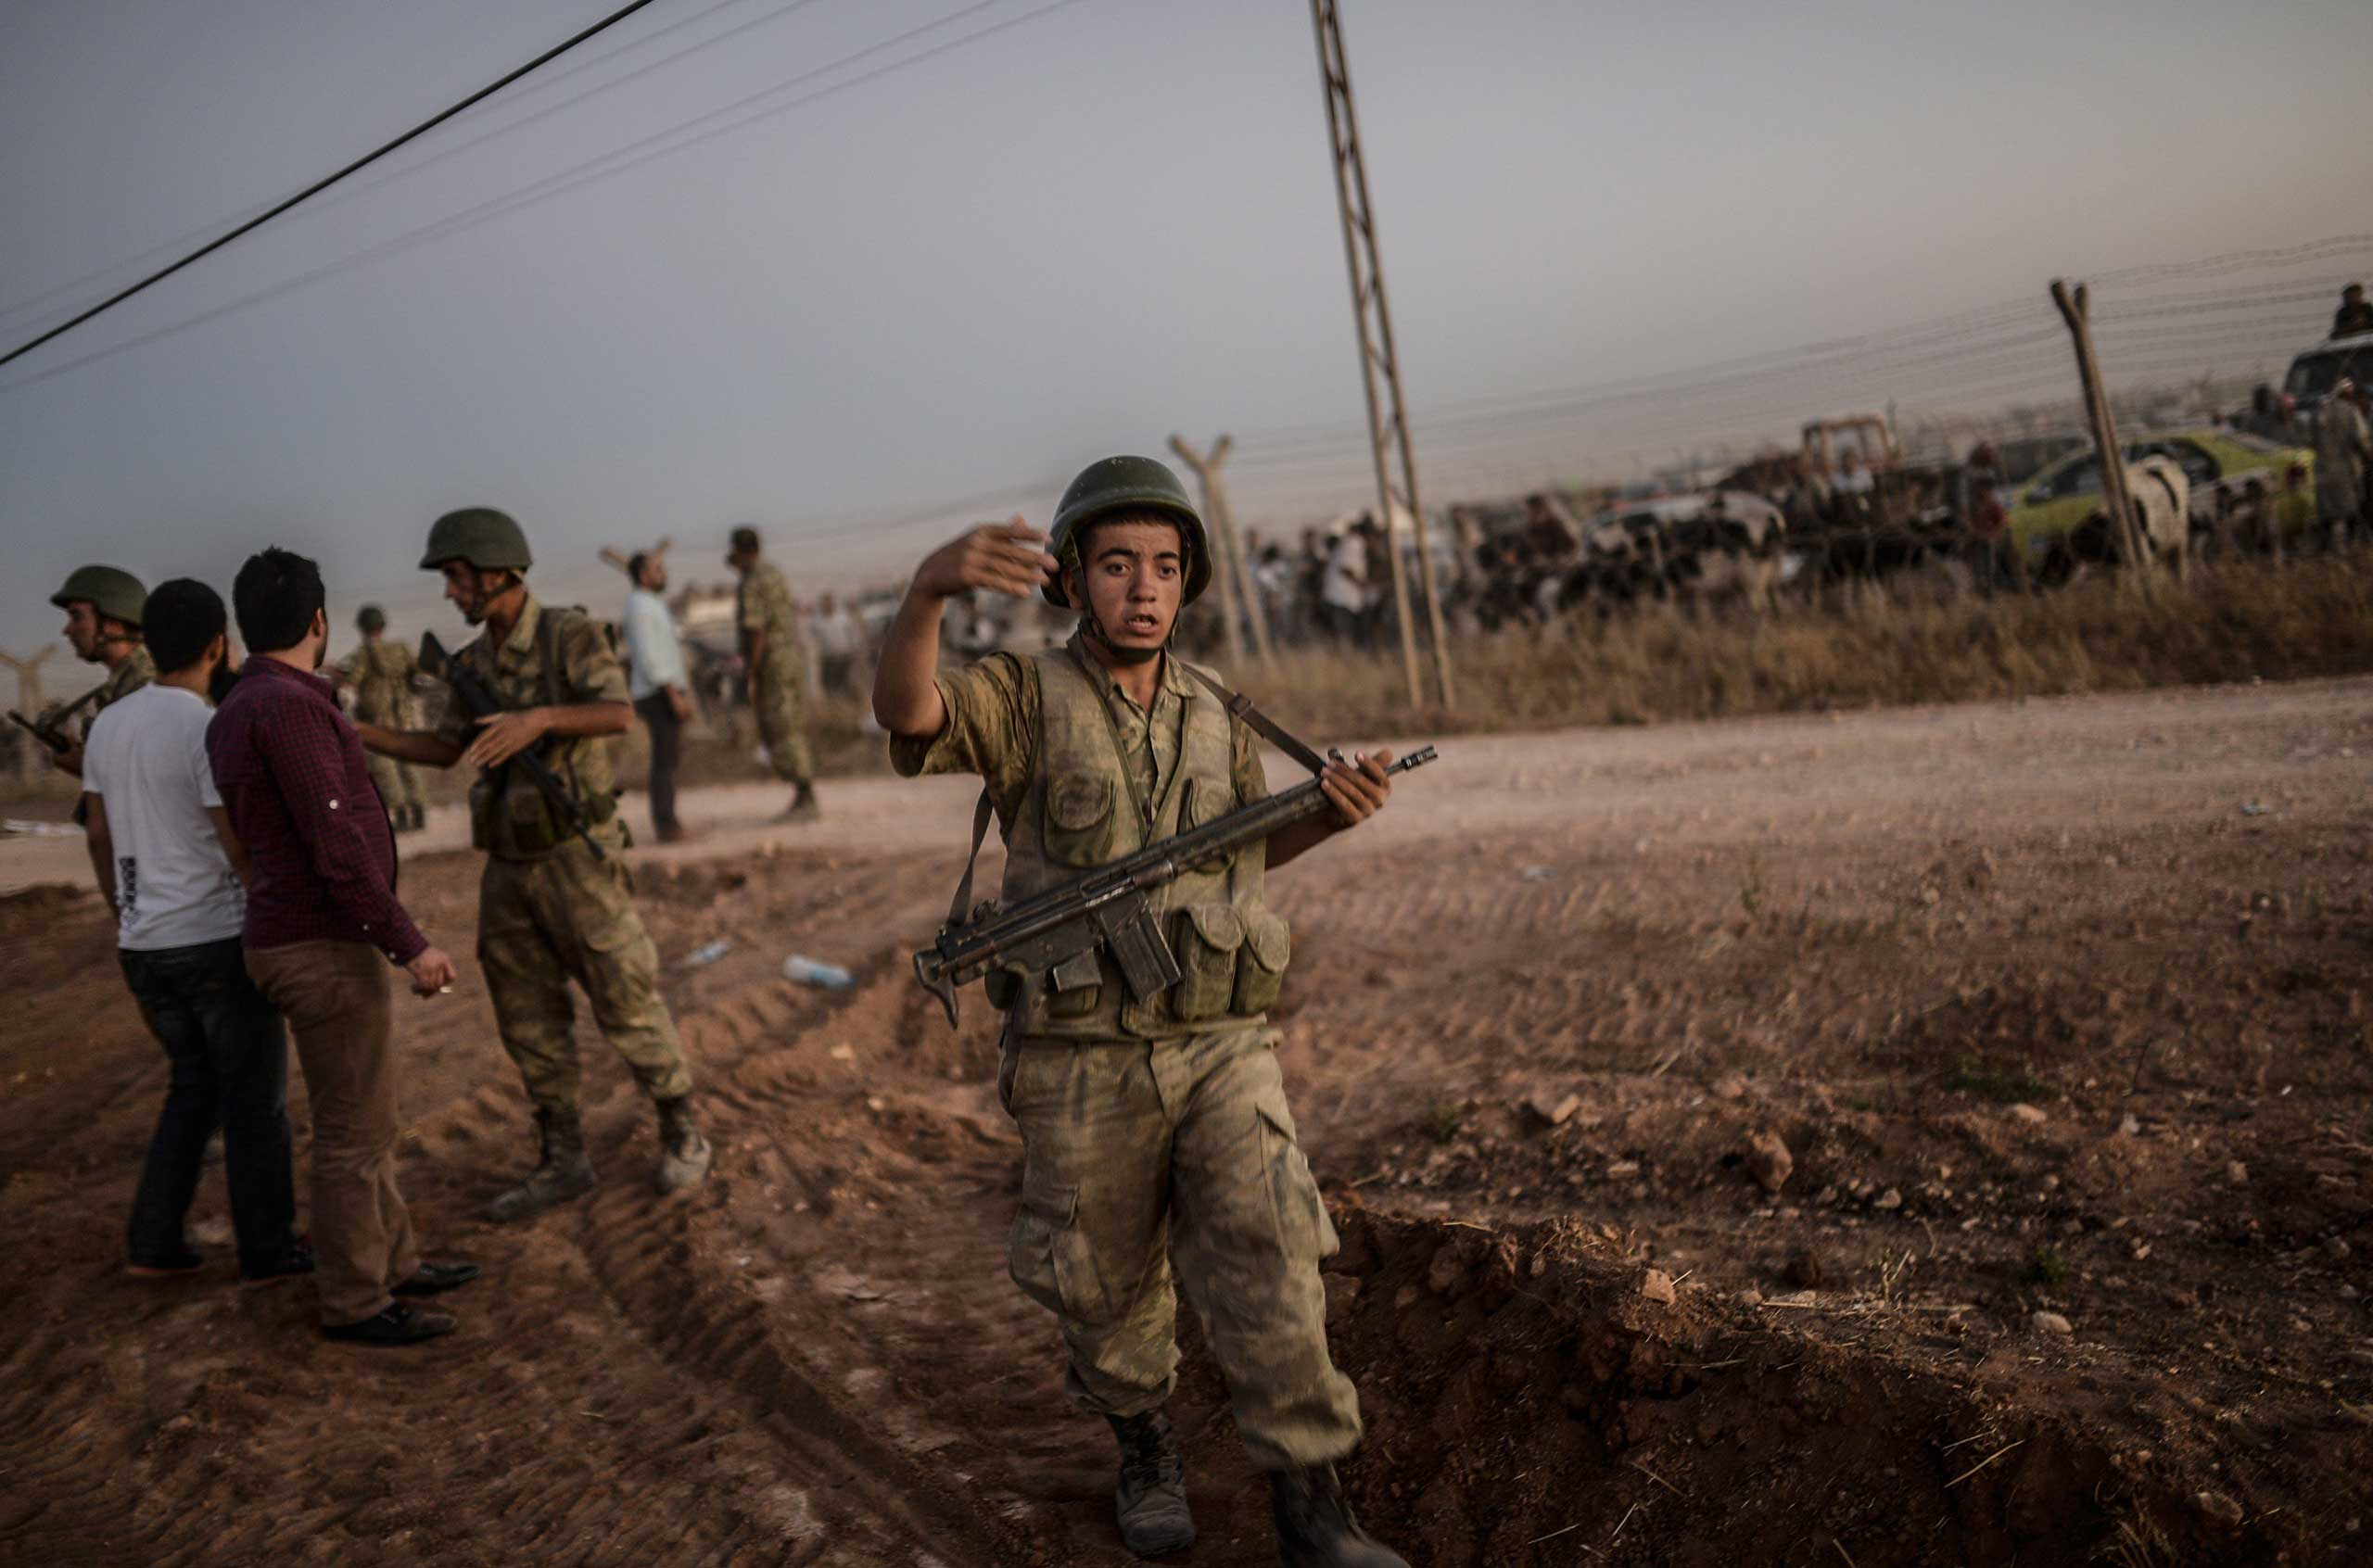 A Turkish soldier asks people to stay away from the Syrian border at the southeastern town of Suruc in Sanliurfa province, on Sept. 21, 2014.